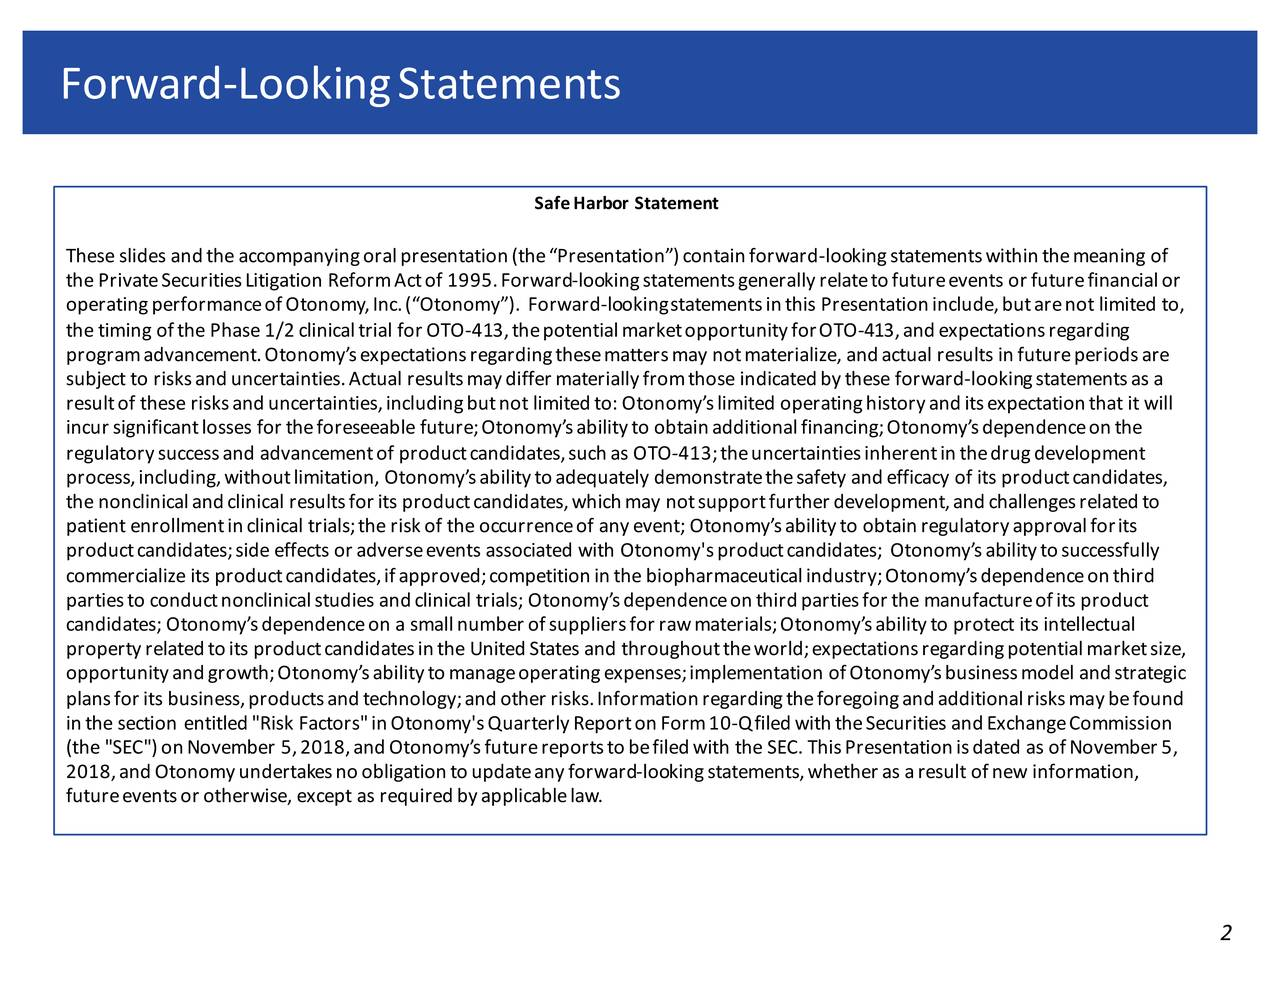 """Safe Harbor Statement These slides and the accompanying oral presentation (the """"Presentation"""") contain forward -looking statements within the meaning o f the Private Securities Litigation Reform Act of 1995. Forw -ordking statements generally relate to future events or futura en ial or operating performance of Otonomy, Inc. (""""Otonomy""""). Forward-looking statements in this Presentation include, but are not limite d to, the timing of the Phase 1/2 clinical trial for OTO-413, the potential market opportunity for OTO -413, and expectations regarding program advancement. Otonomy's expectations regarding these matters may not materialize, and actual results in future periods are subject to risks and uncertainties. Actual results may differ materially from those indicated by these forward-looking statemenst as a result of these risks and uncertainties, including but not limited to: Otonomy's limited operating history and its expectation that it will incur significant losses for the foreseeable future; Otonomy's ability to obtain additional financing; Otonomy's dependence on the regulatory success and advancement of product candidates, such as OTO-413; the uncertainties inherent in the drug development process, including, without limitation, Otonomy's ability to adequately demonstrate the safety and efficacy of its product candidates, the nonclinical and clinical results for its product candidates, which may not support further development, and challenges re lated to patient enrollment in clinical trials; the risk of the occurrence of any event; Otonomy's ability to obtain regulatory approval for its product candidates; side effects or adverse events associated with Otonomy's product candidates; Otonomy's ability to successfully commercialize its product candidates, if approved; competition in the biopharmaceutical industry; Otonomy's dependence on third parties to conduct nonclinical studies and clinical trials; Otonomy's dependence on third parties for the manufacture of i"""